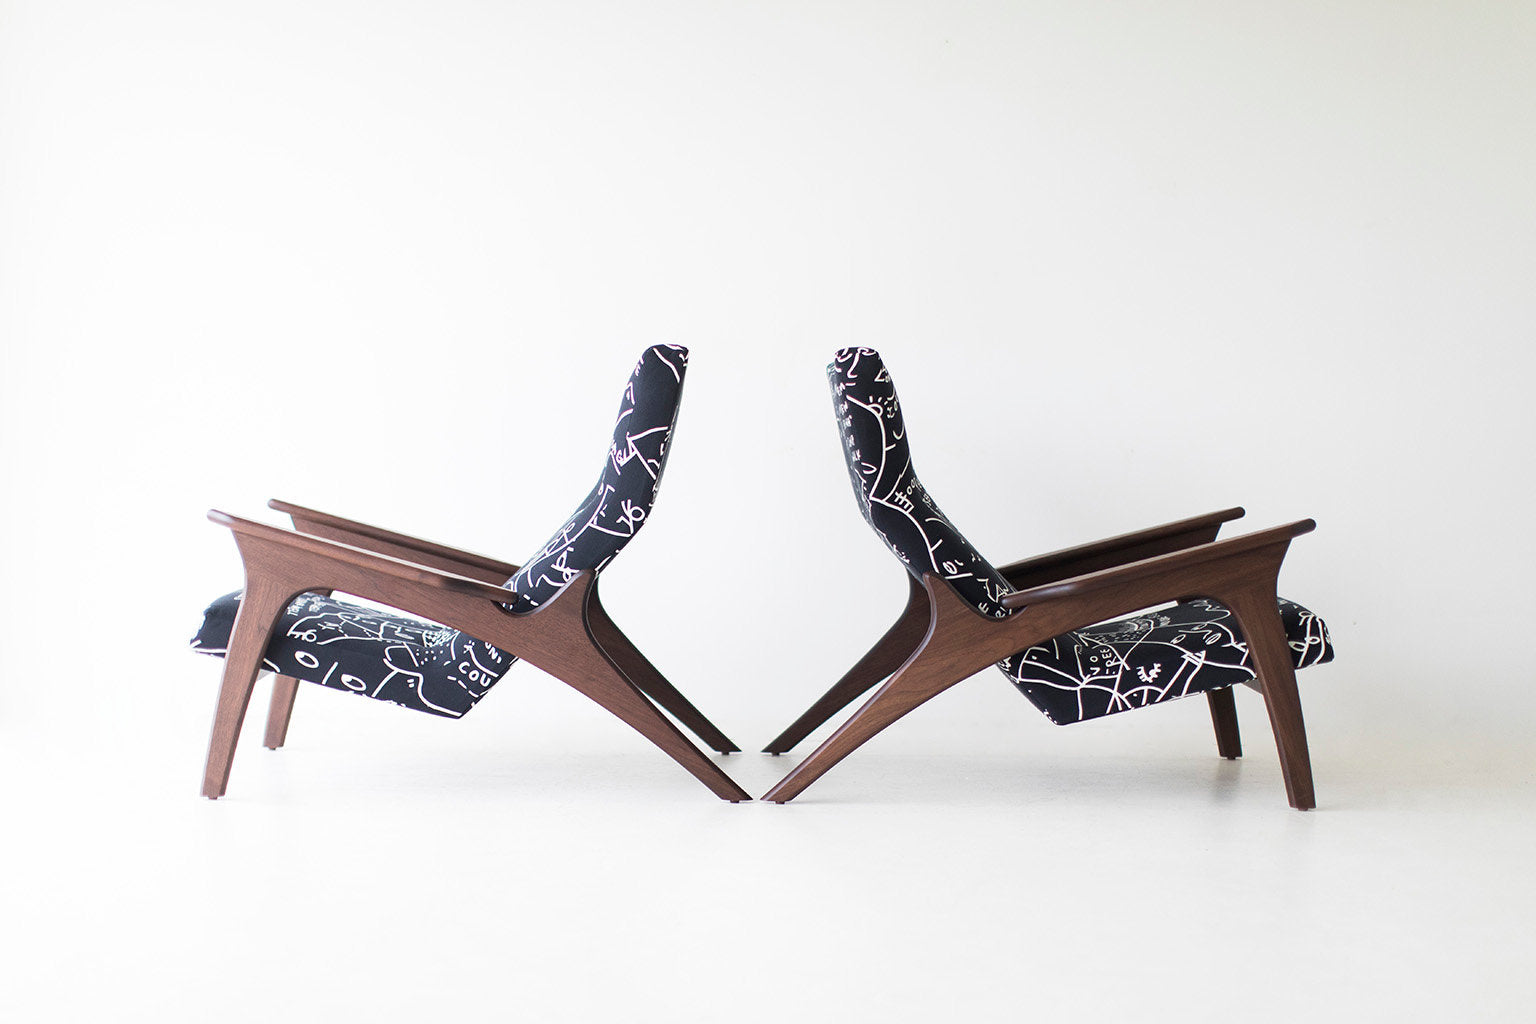 picasso-modern-high-back-chairs-08